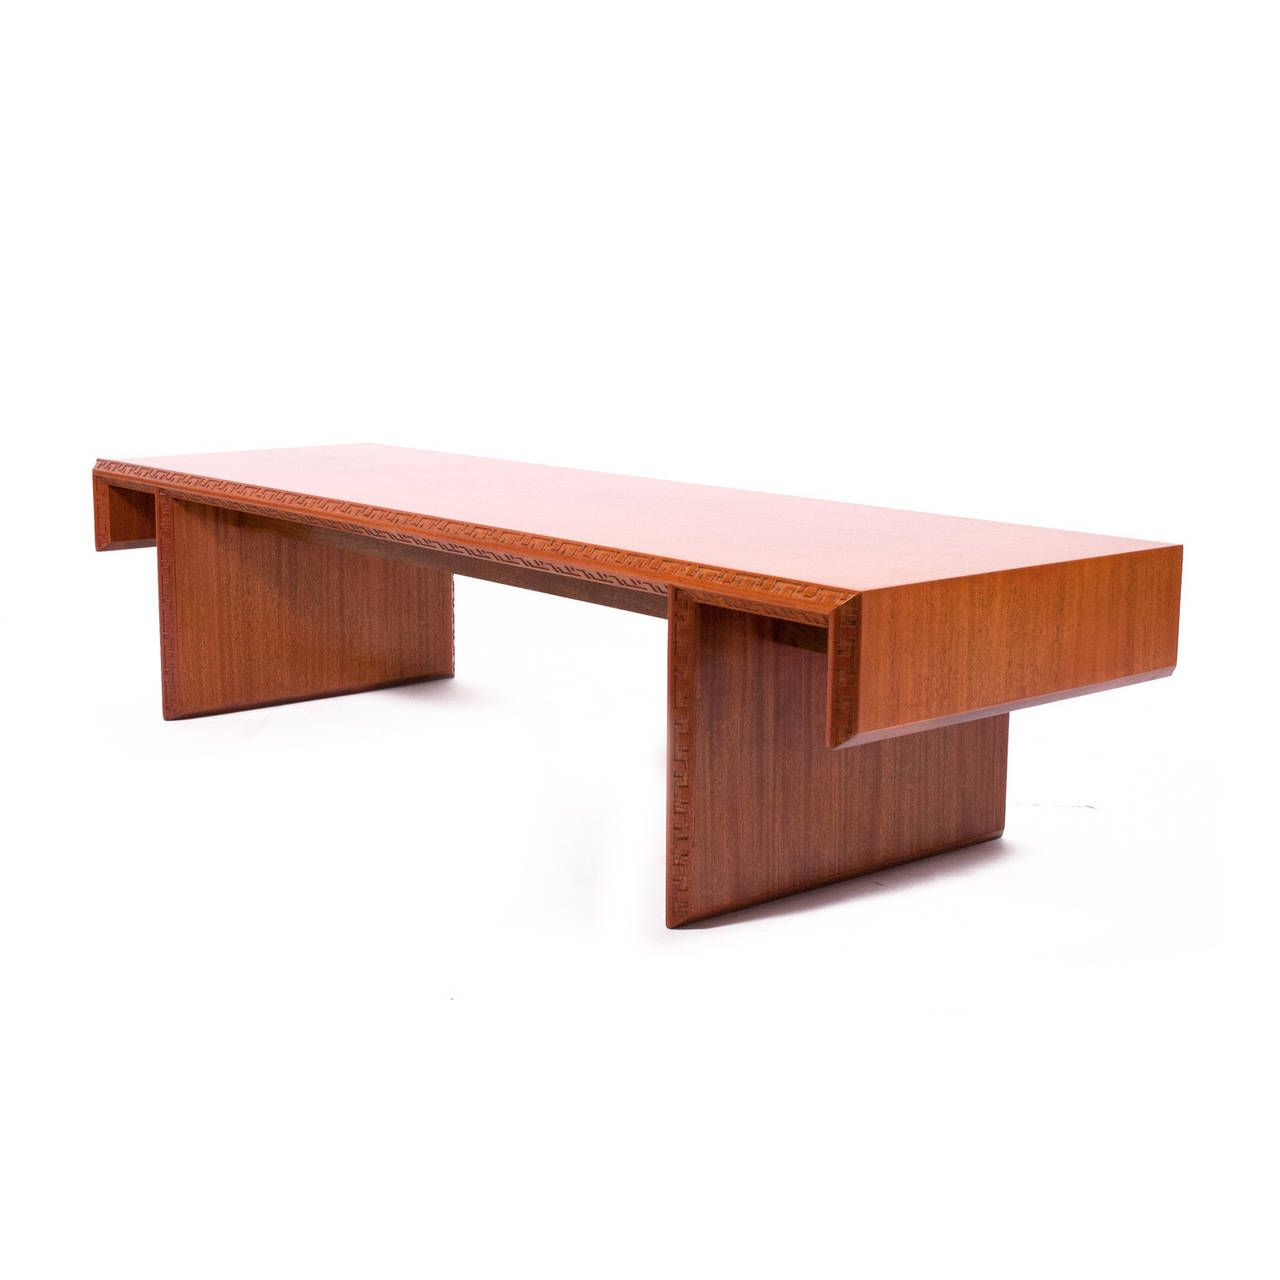 - Frank Lloyd Wright Mahogany Coffee Table Or Bench From A Unique  Collection Of Antique And Modern Coffee … Mahogany Coffee Table, Coffee  Table, Coffee Table Wood